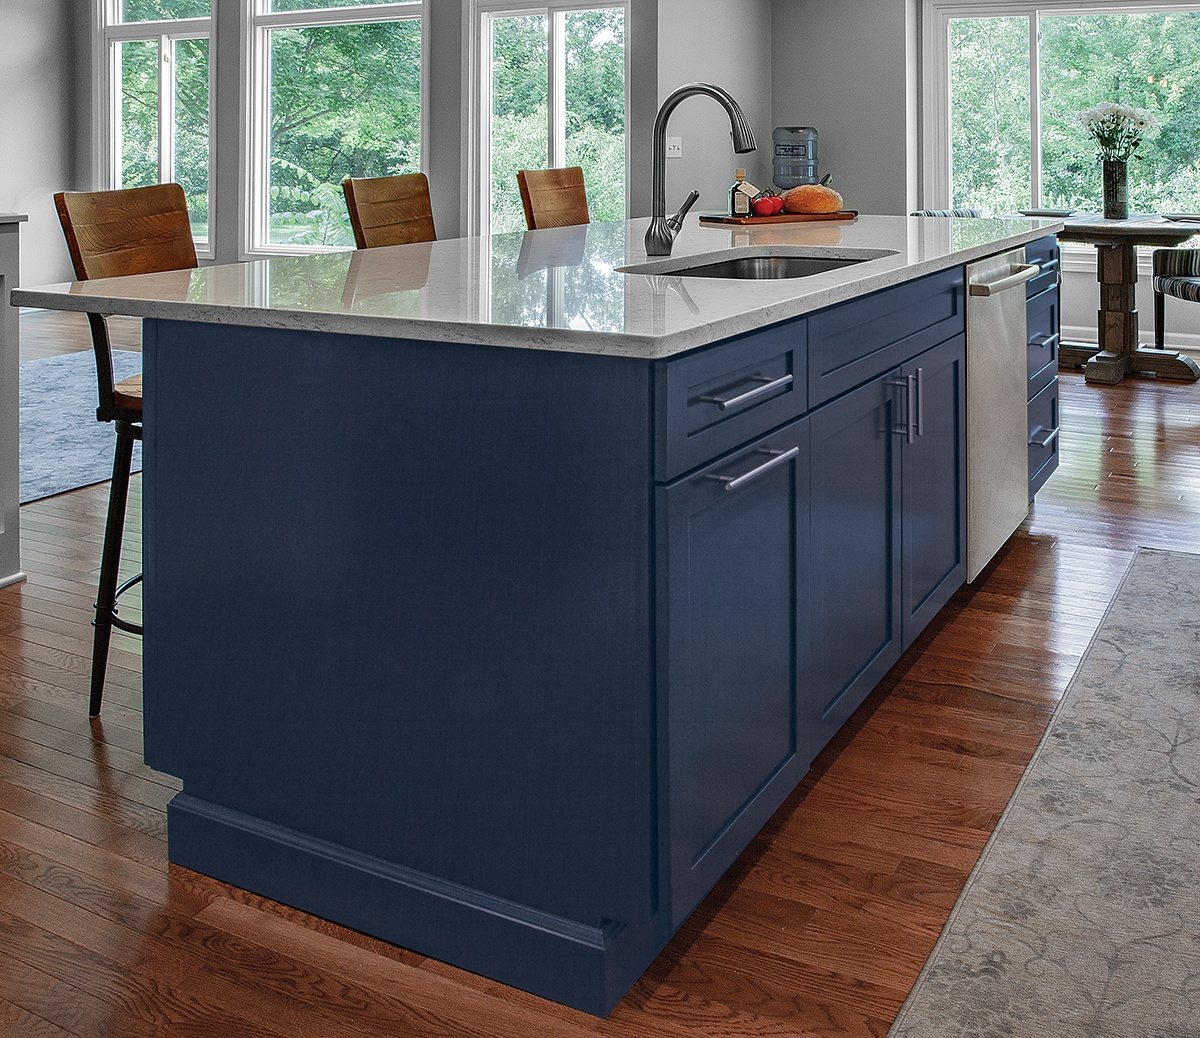 KSI-Designer-Lindsey Griner-Merillat-Kitchen-Masterpiece-Maple-Midnight Blue-Island